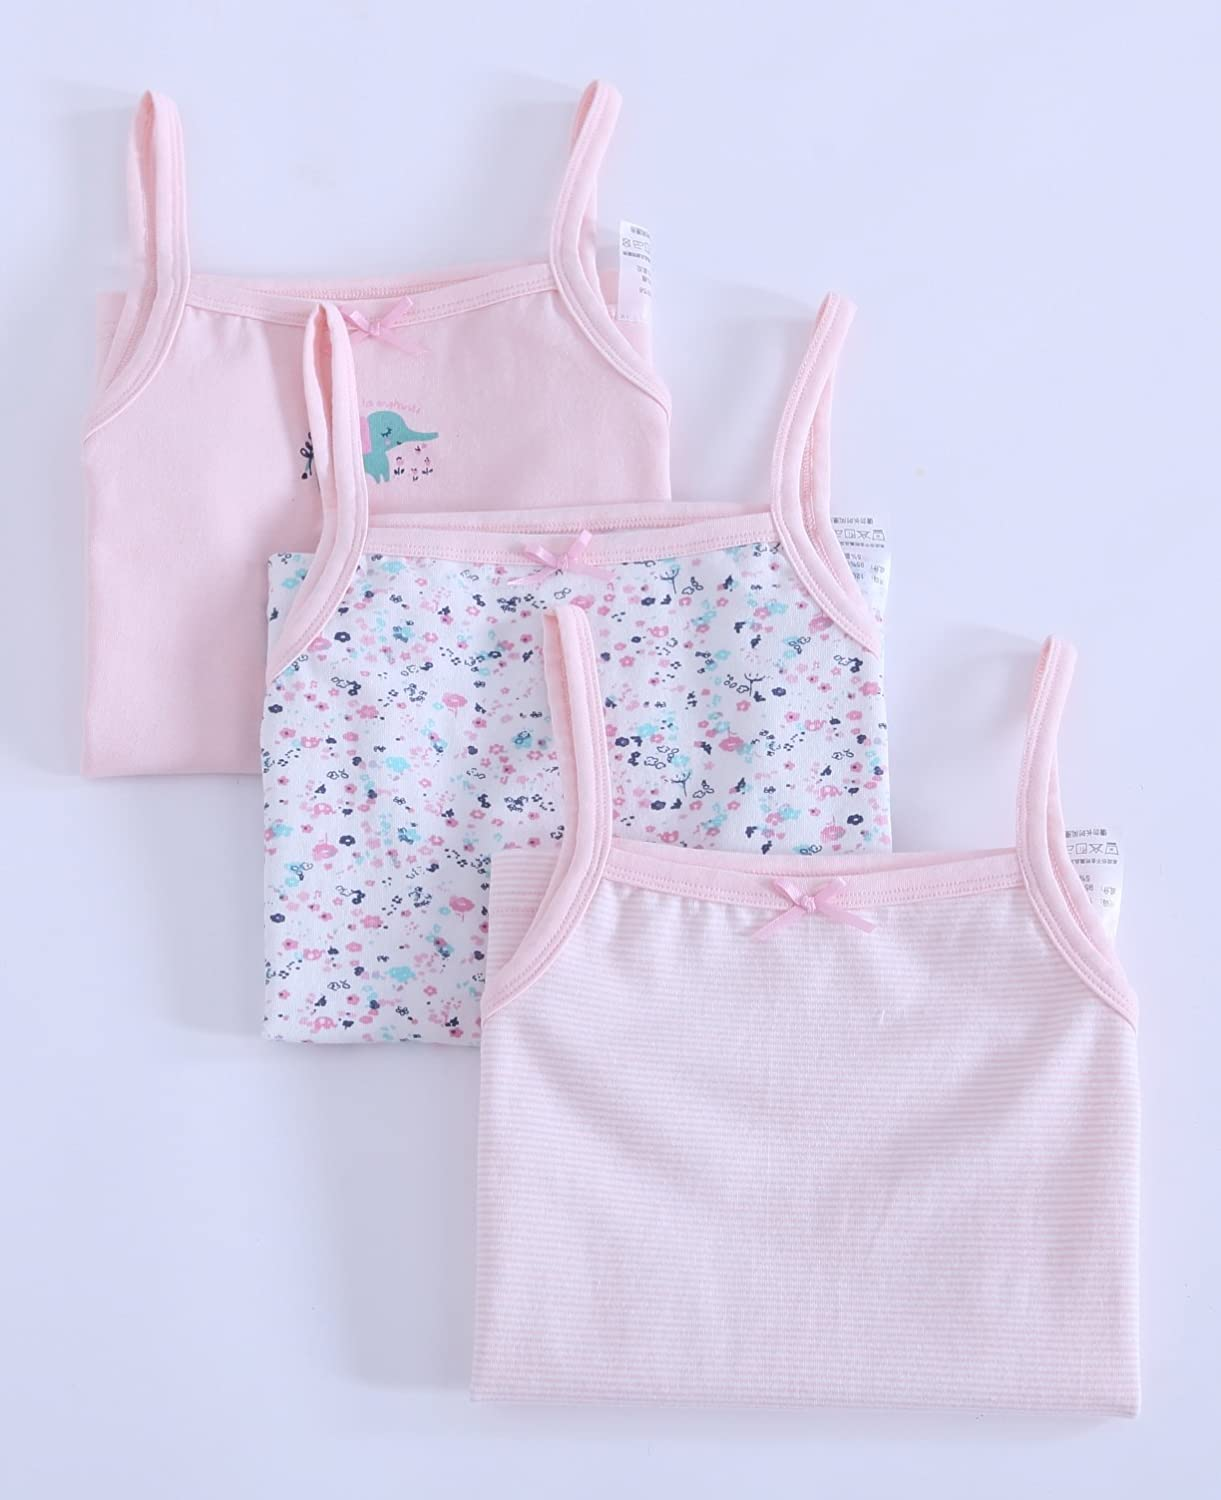 Zegoo 10-12 Years Girls 3 Pack Pink Camisole Cotton Tank Tops